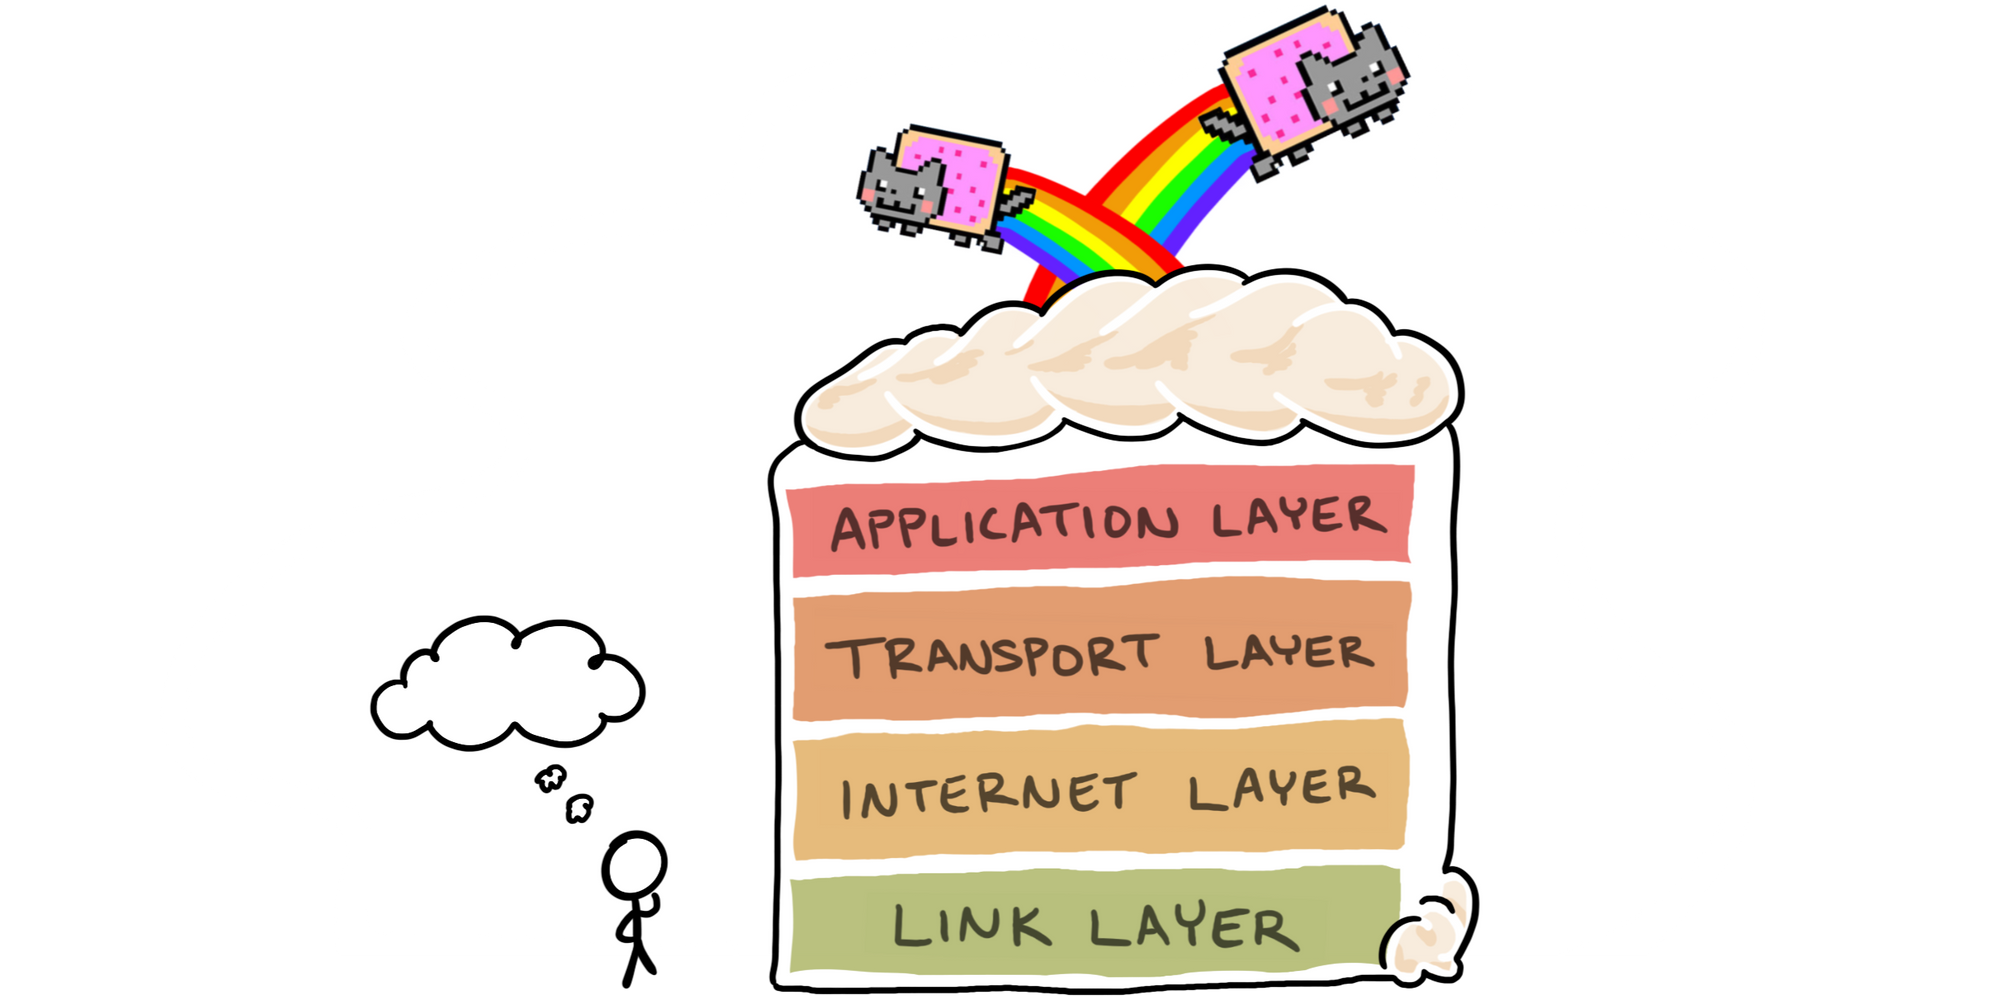 Cartoon of the full Internet layer cake, topped with Nyan Cat memes